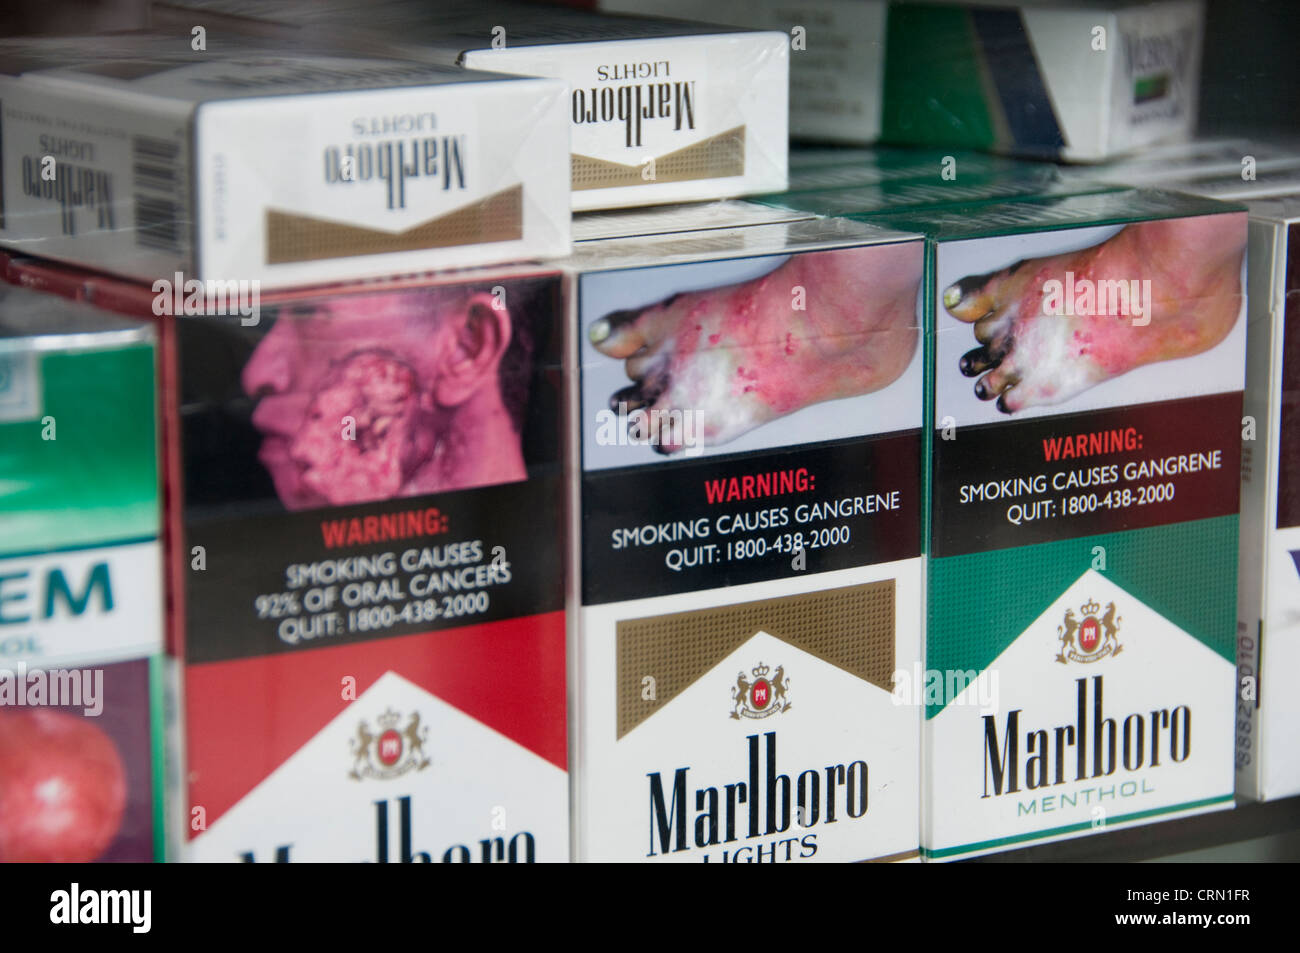 Place to buy President cigarettes